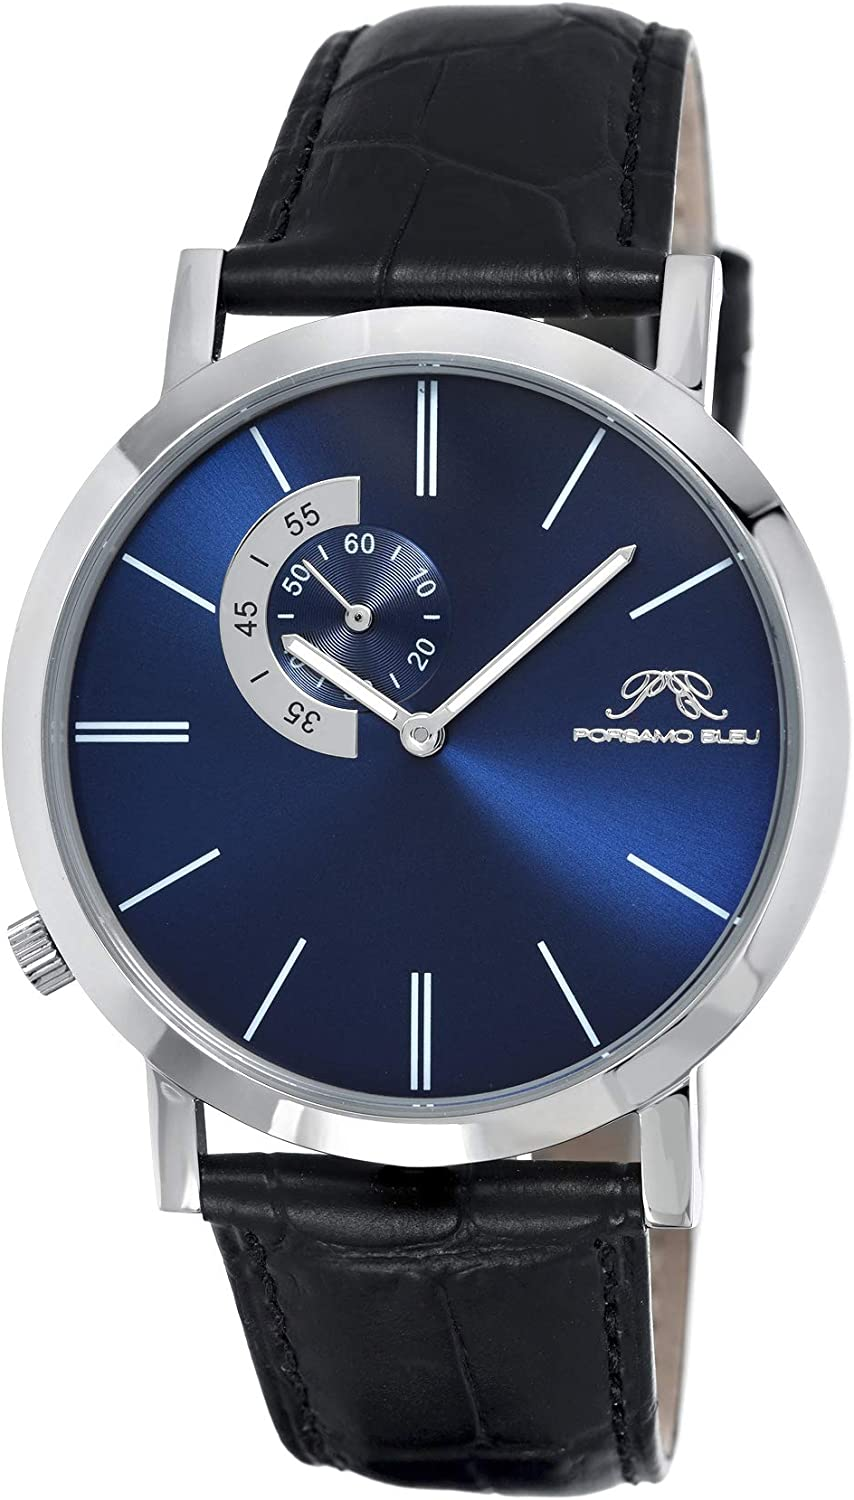 Porsamo Bleu Luxury Parker Max 48% OFF Men's with Watch Steel case Oklahoma City Mall Stainless